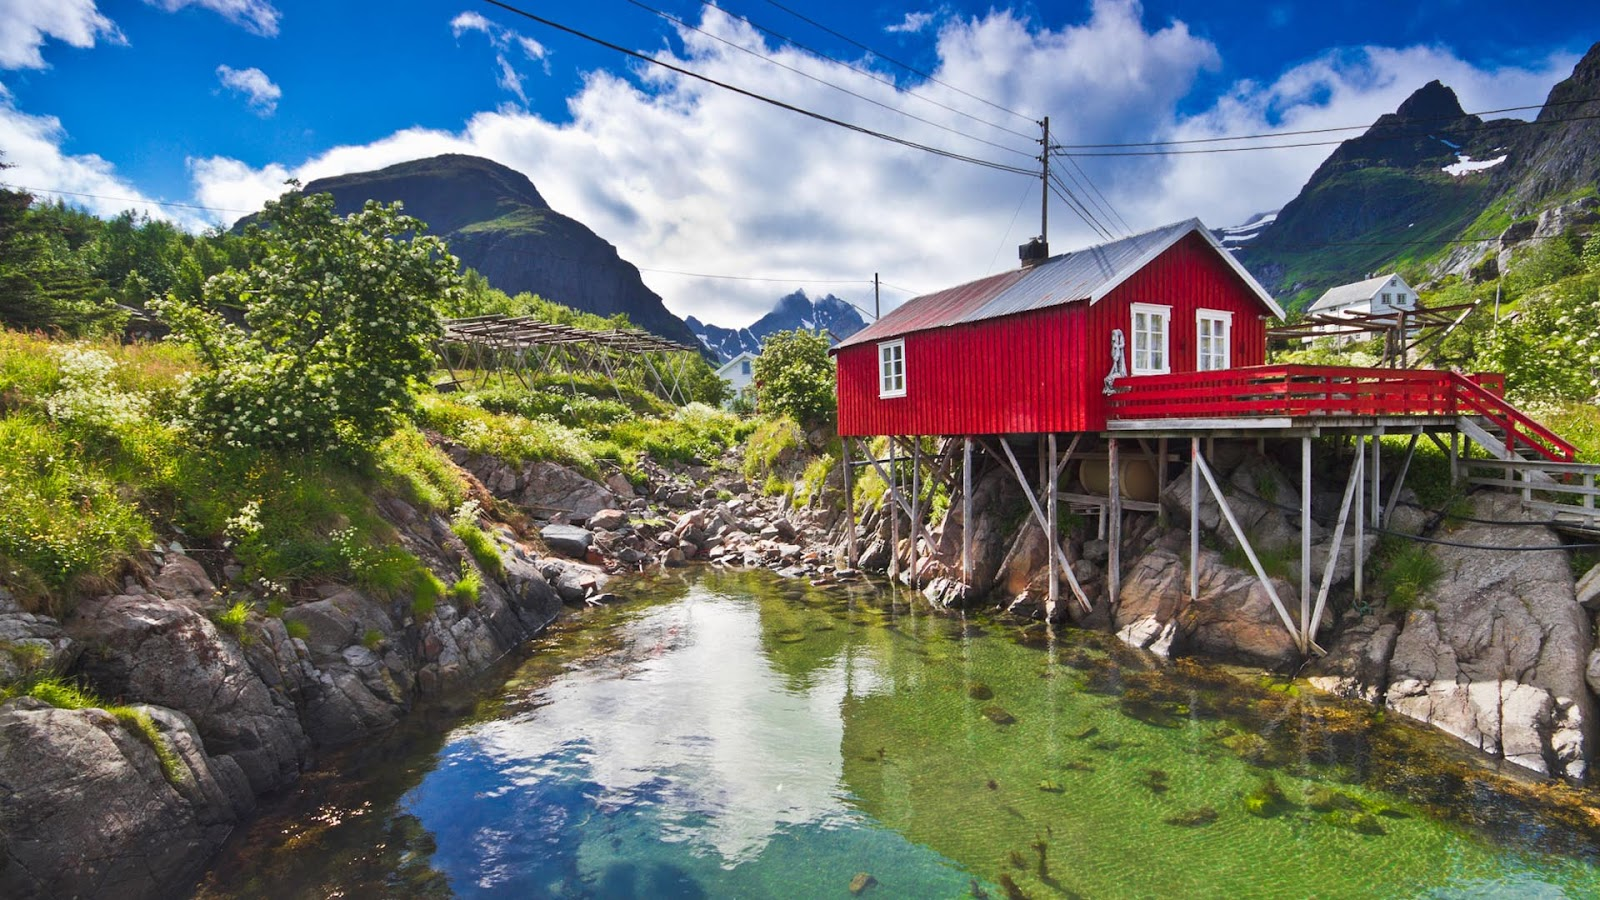 Norway Wallpapers 1080p | HD Wallpapers (High Definition) | Free ...